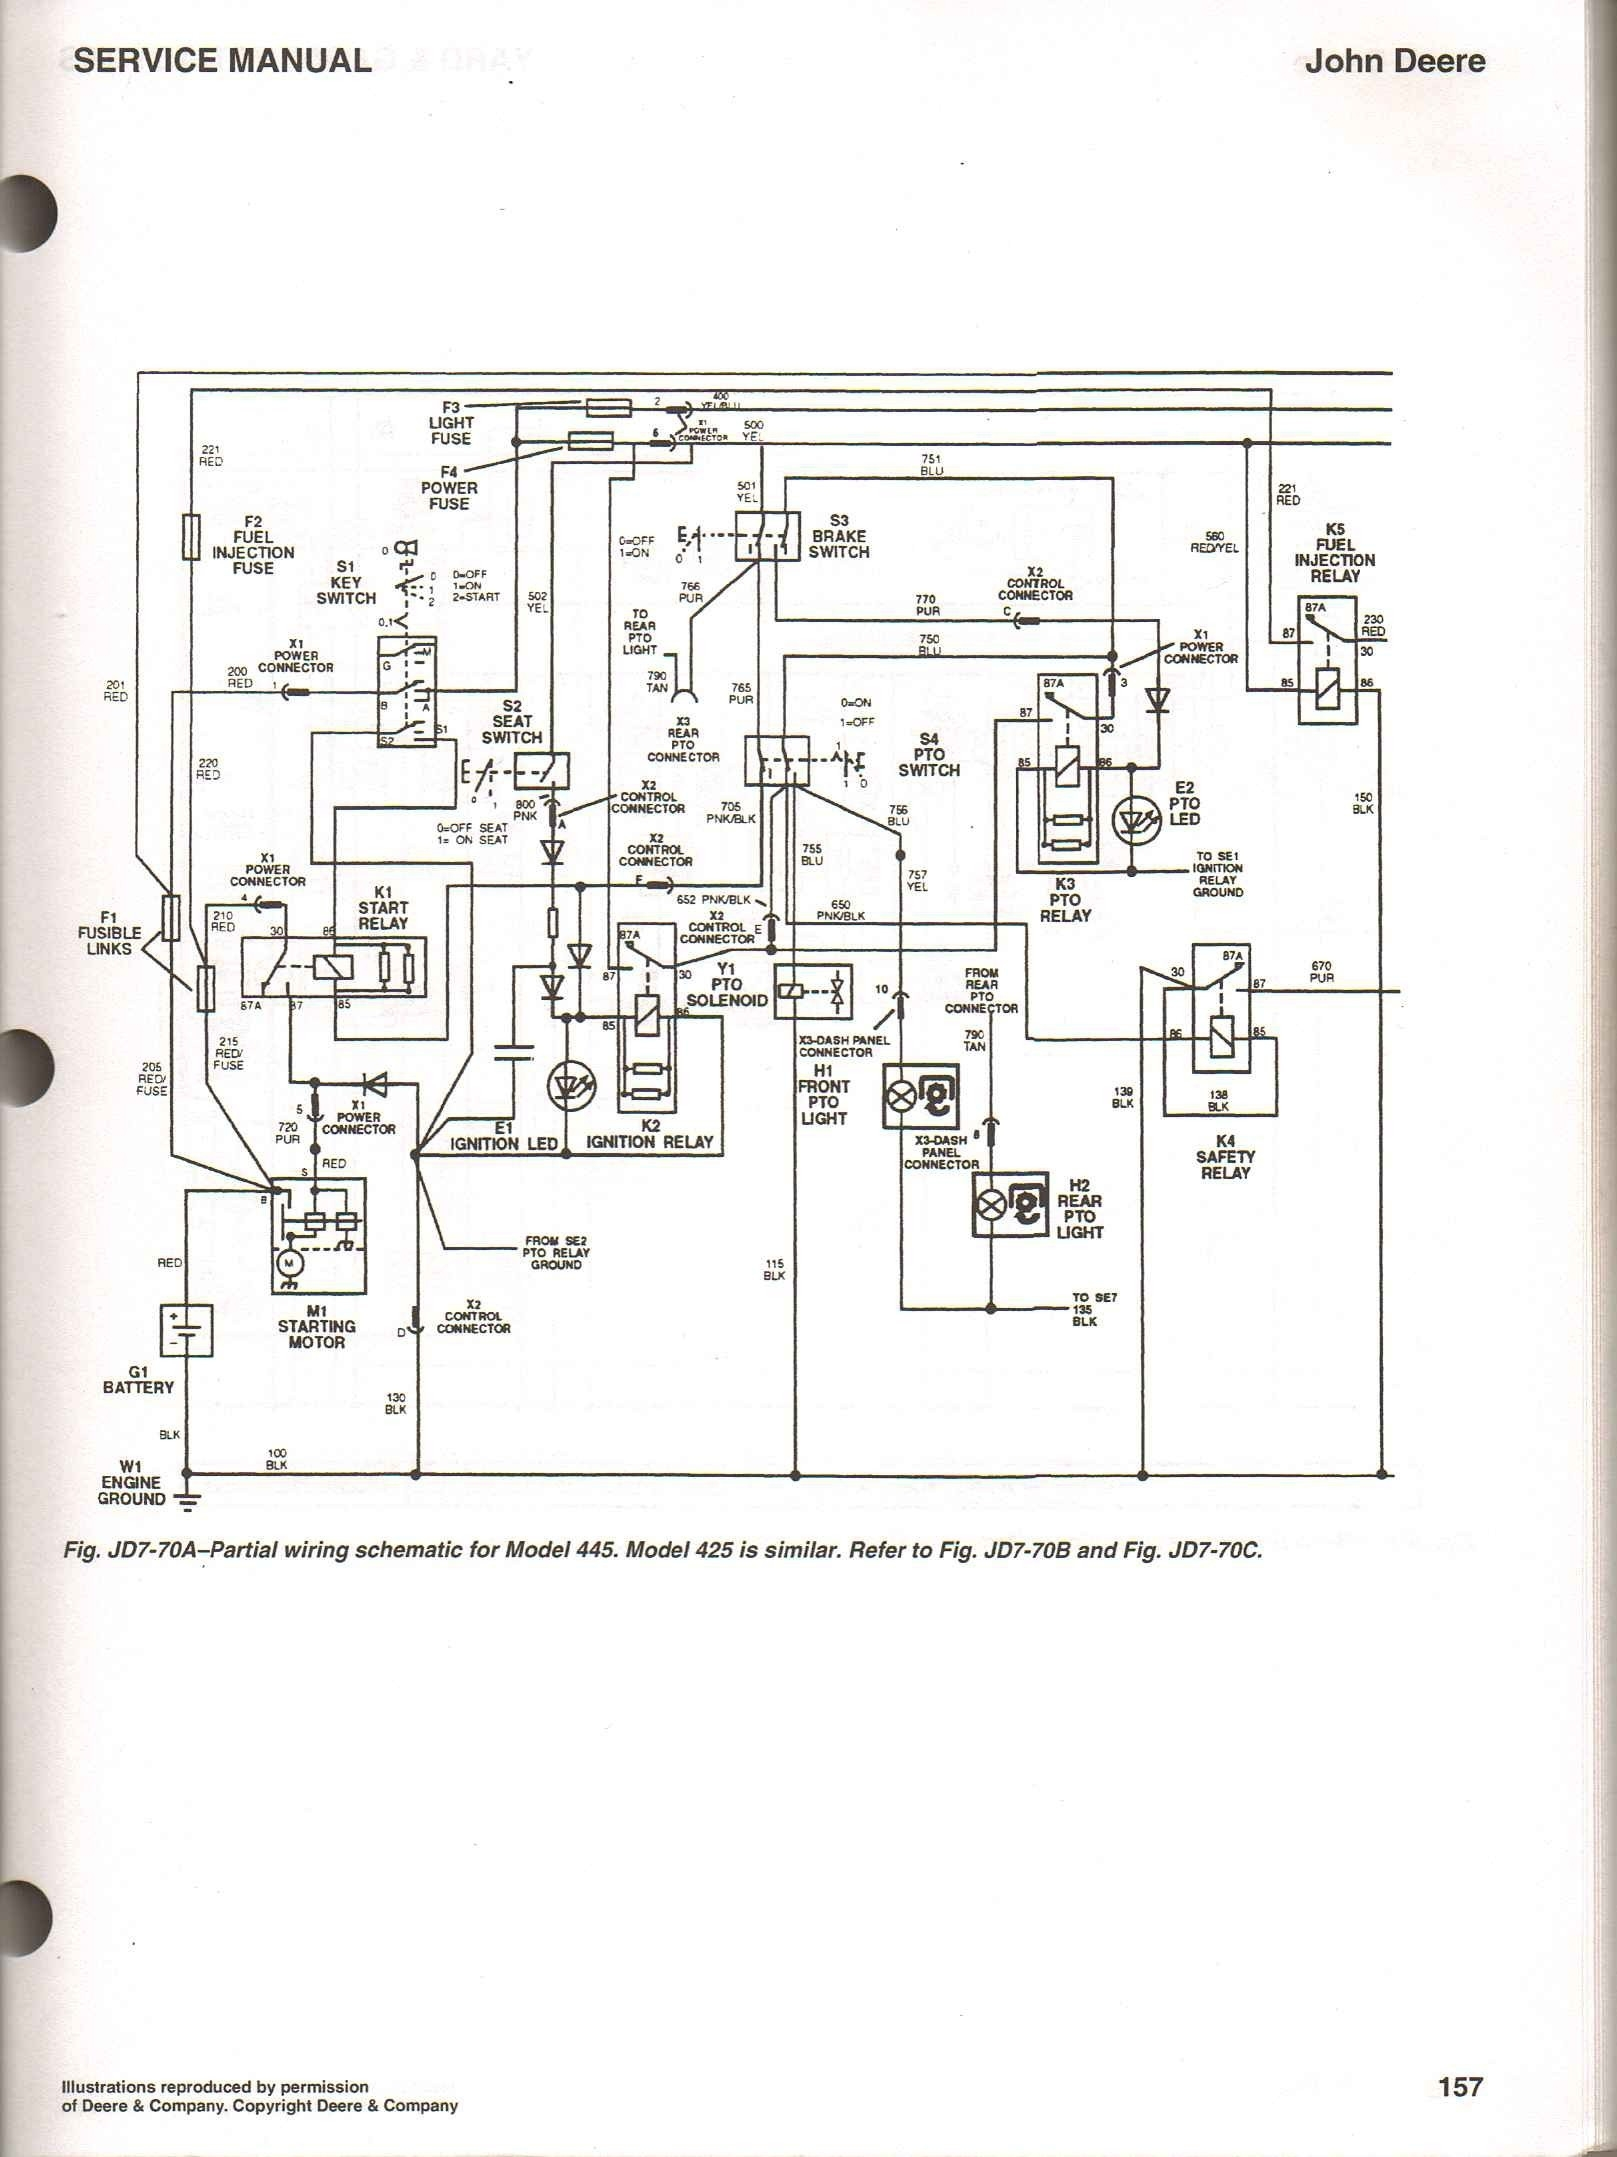 john deere 401cd wiring diagram